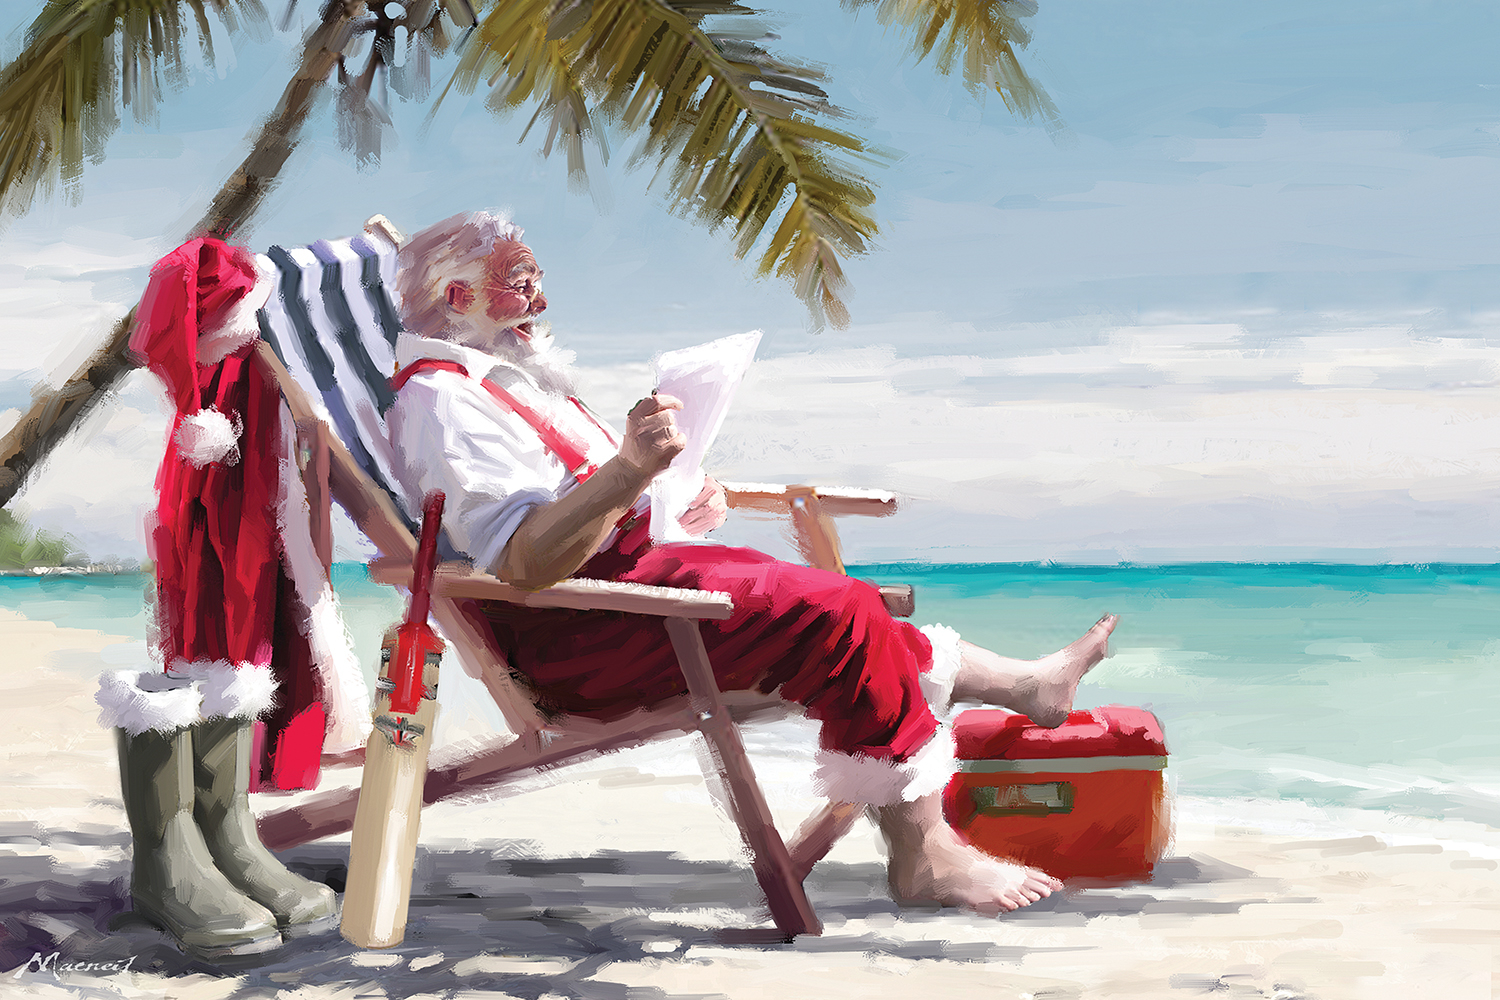 Santa Claus sitting on a chair on the beach barefoot reading a list